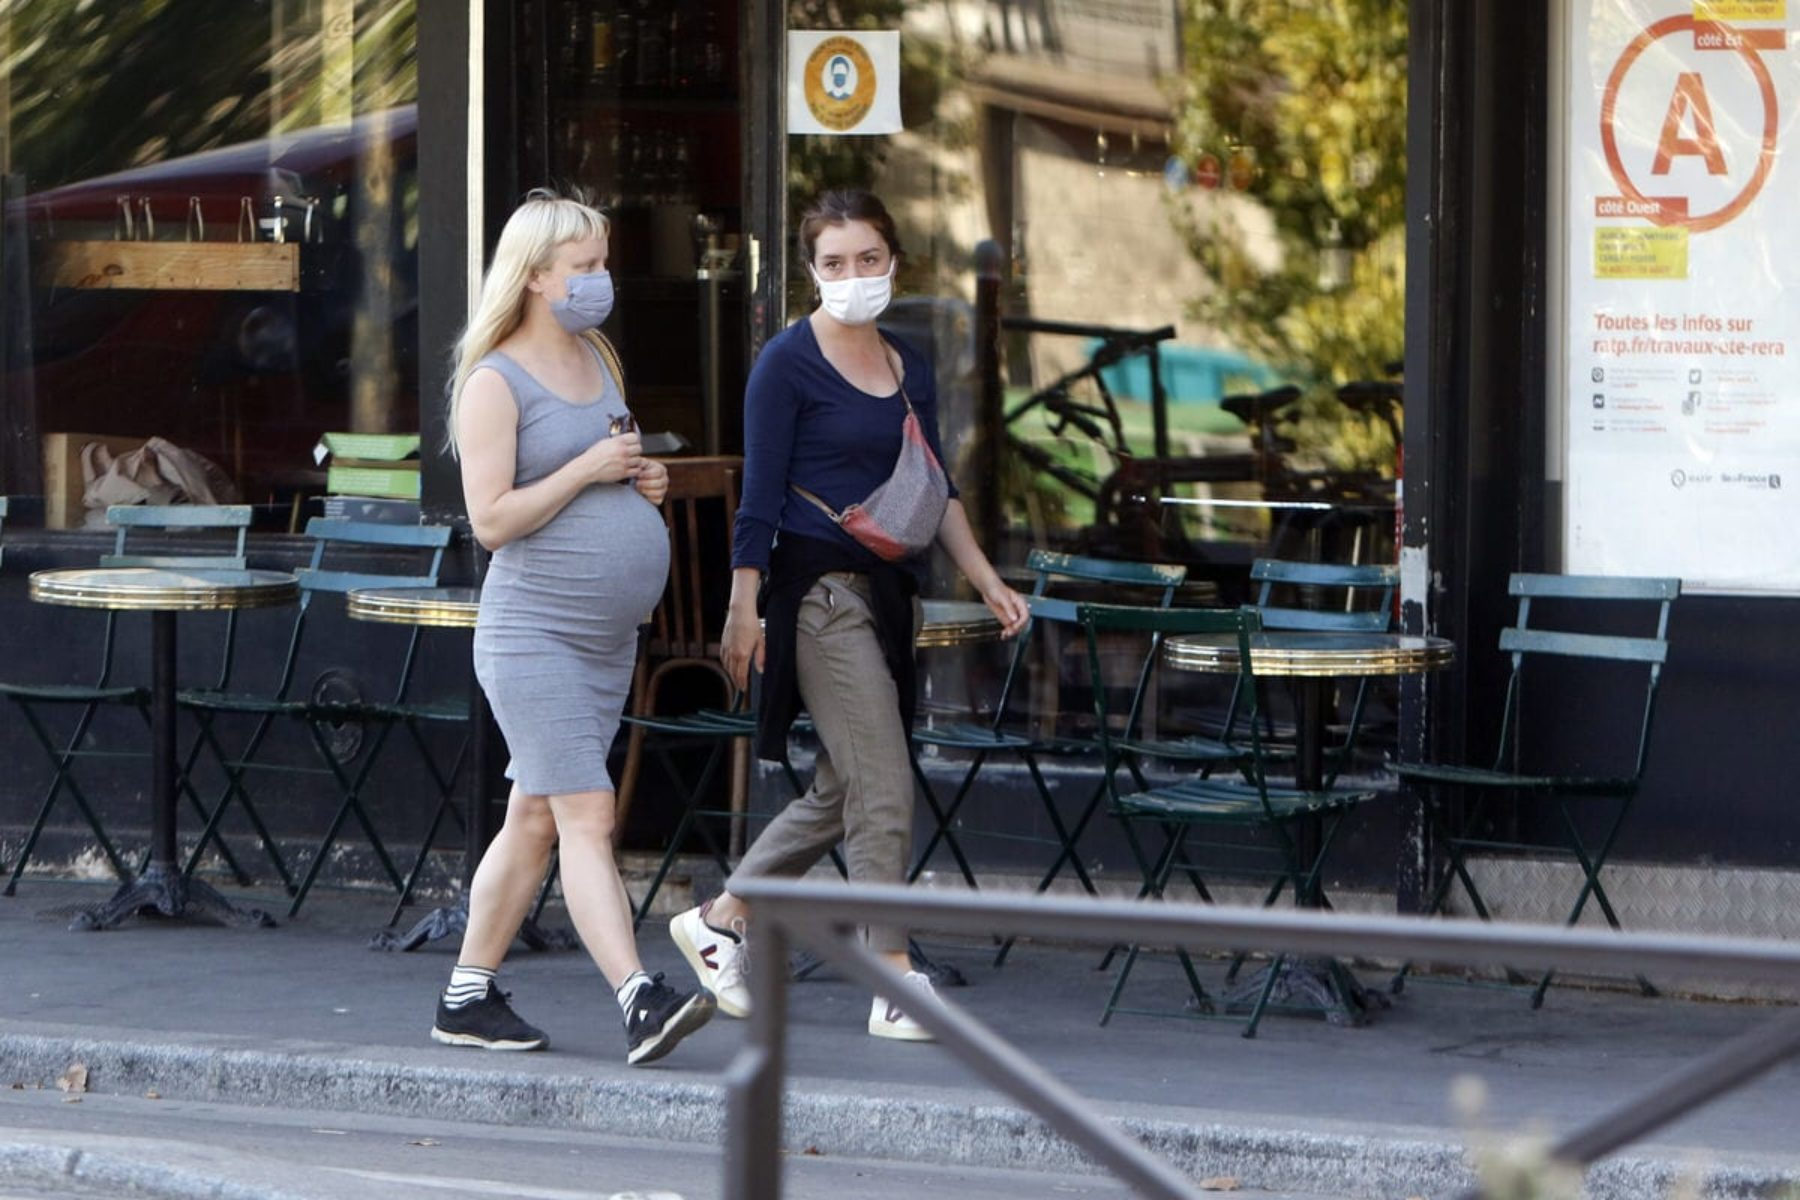 Two pregnant women wearing masks walk down the street.